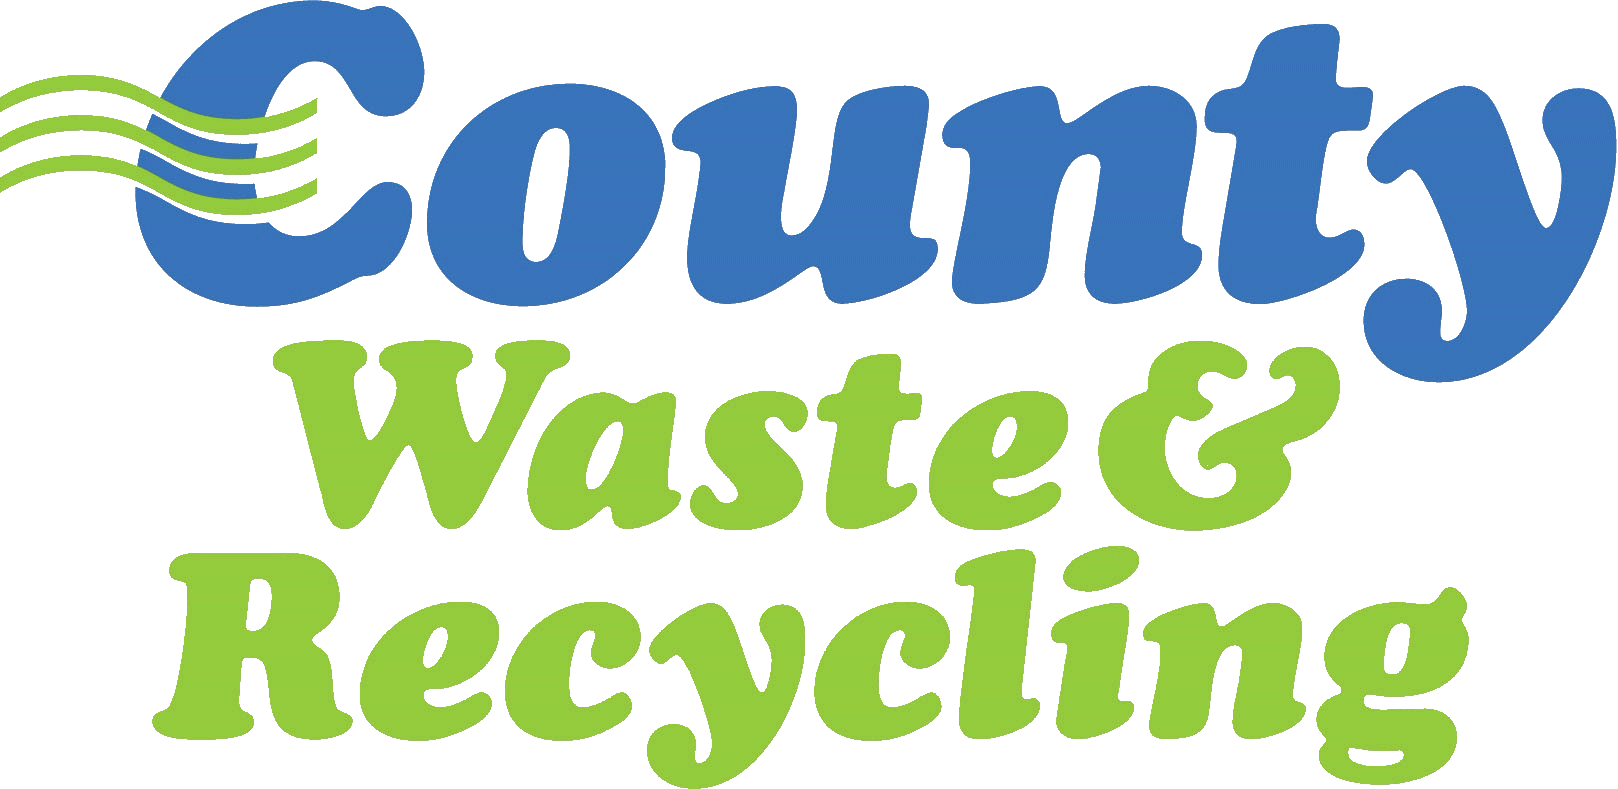 County Waste and Recycling